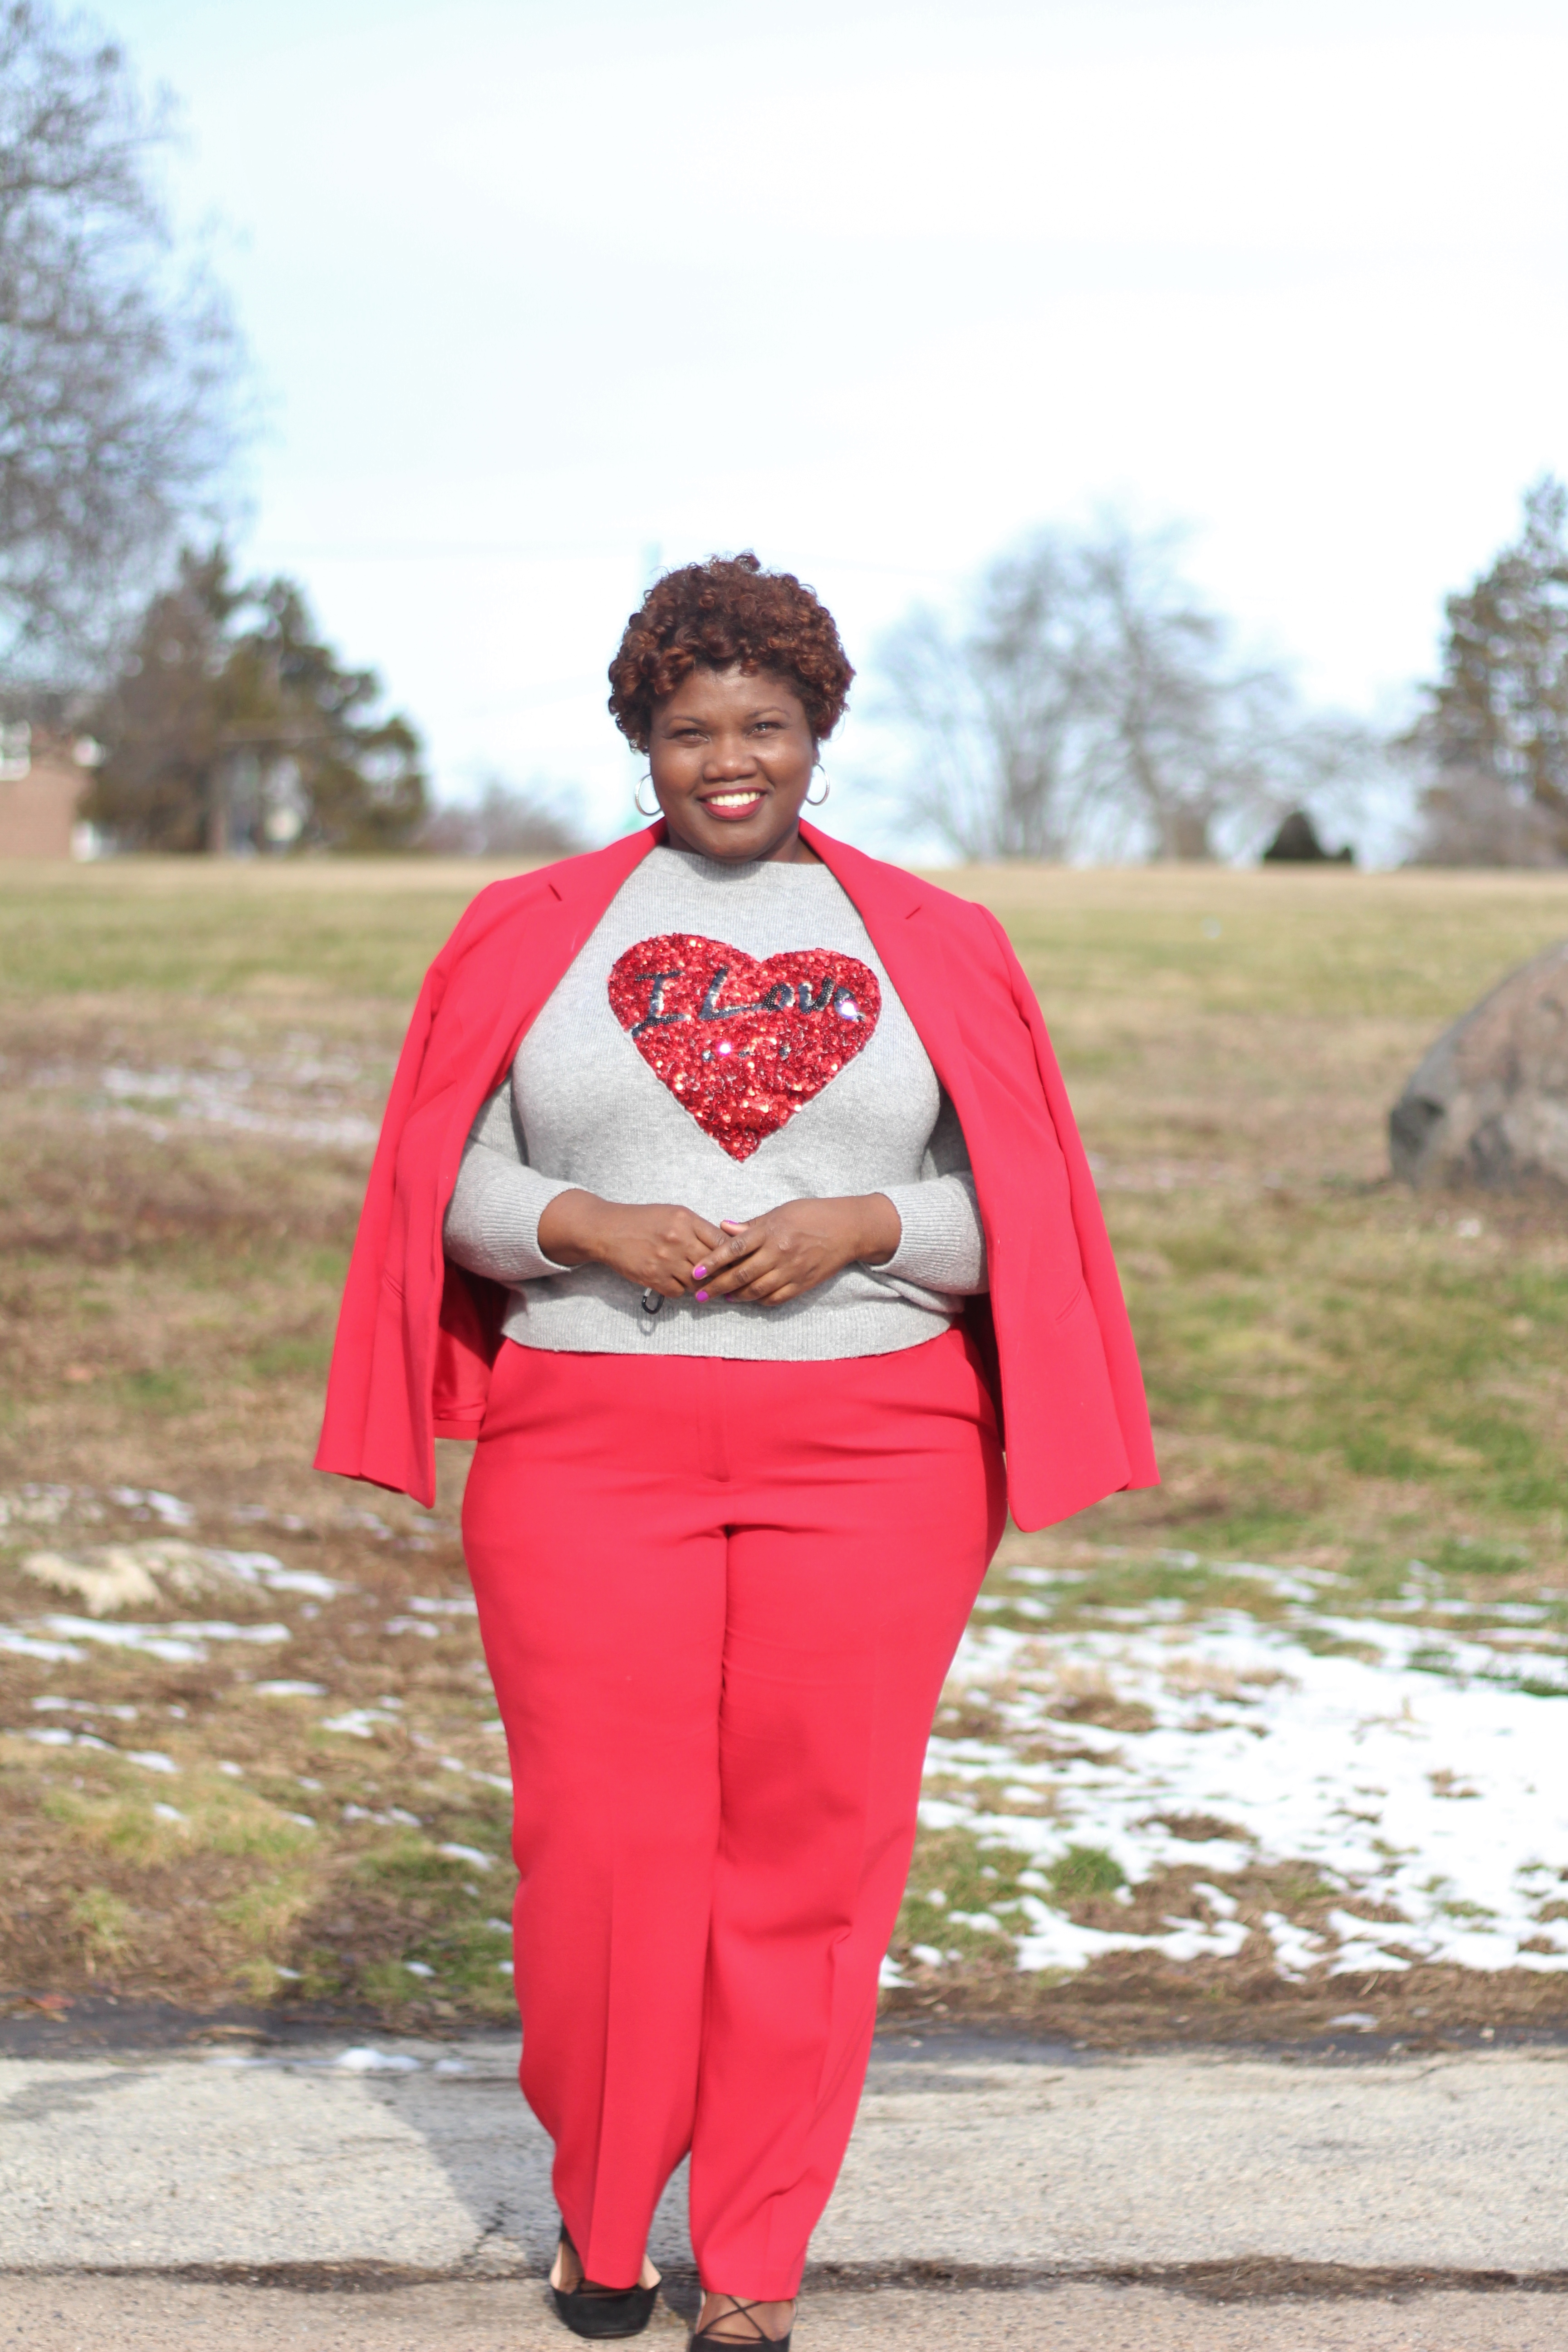 plus size fashion, plus size blogs, plus size bloggers, red suit, plus size suit, sequin, valentines day, red outfit, curvy women, curvy woman, curvy blogs, curvy bloggers